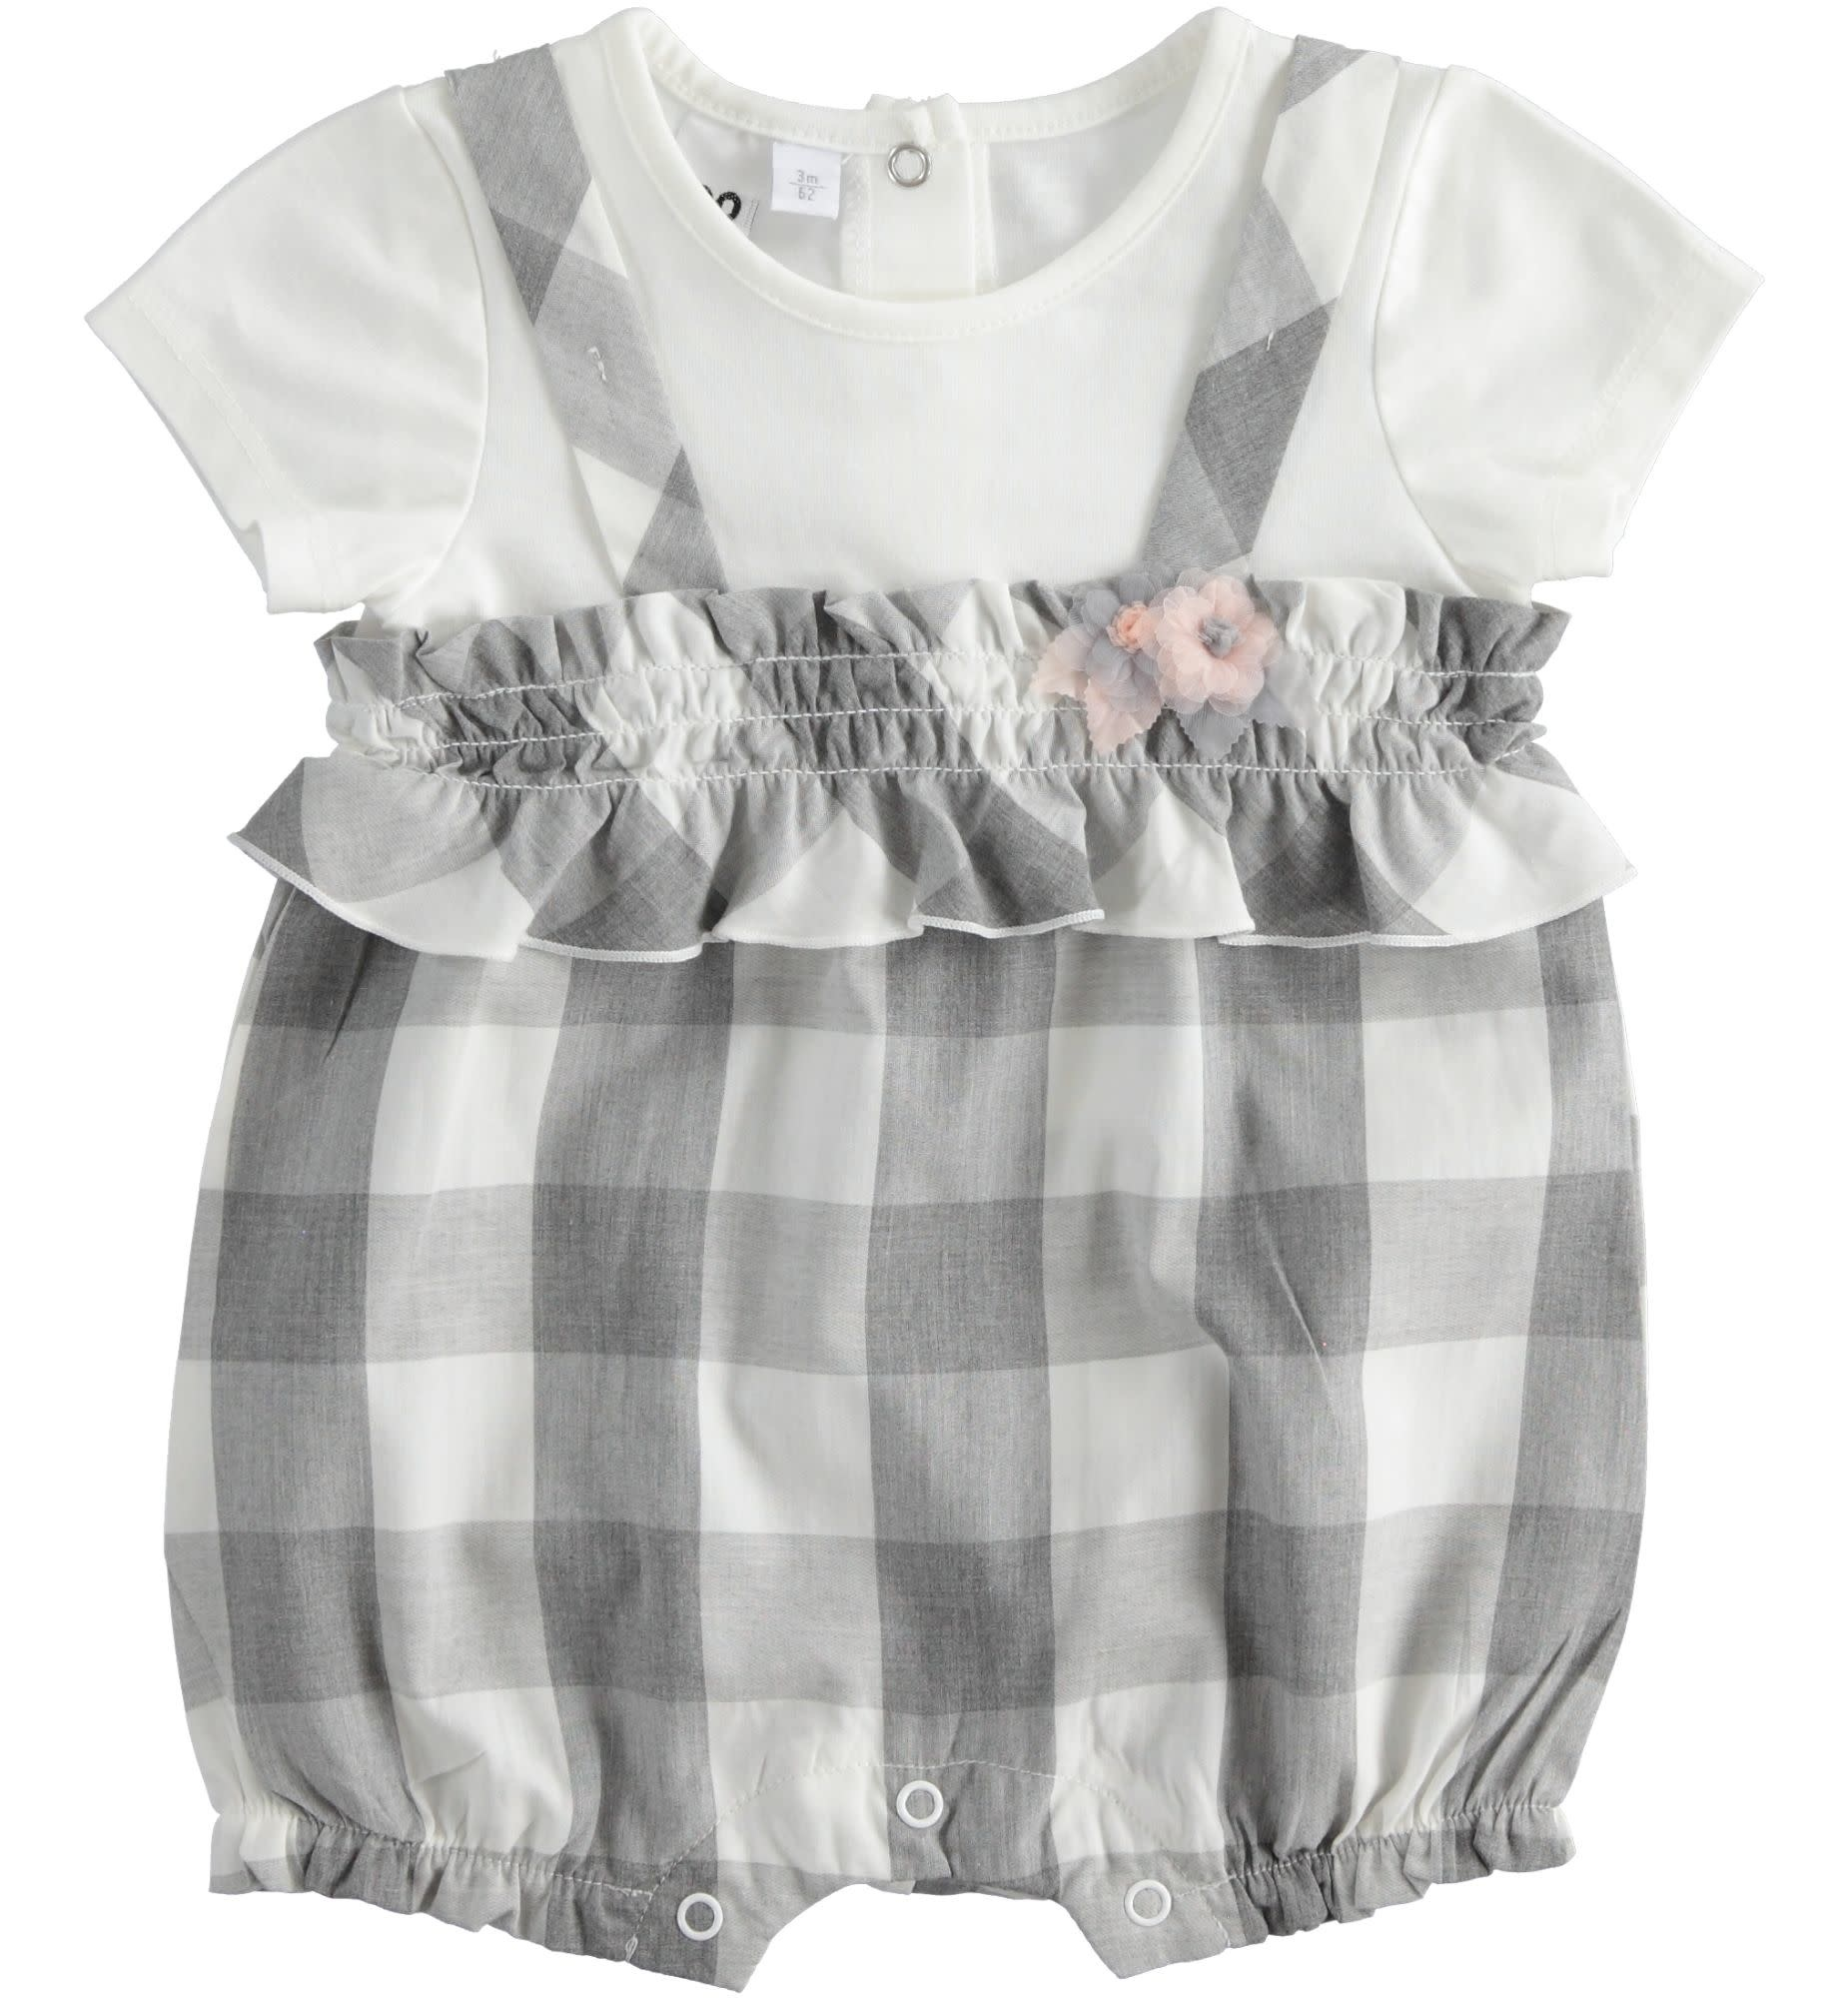 iDo iDO SS20 Baby Girl all in one grey romper with pink flower detail J119